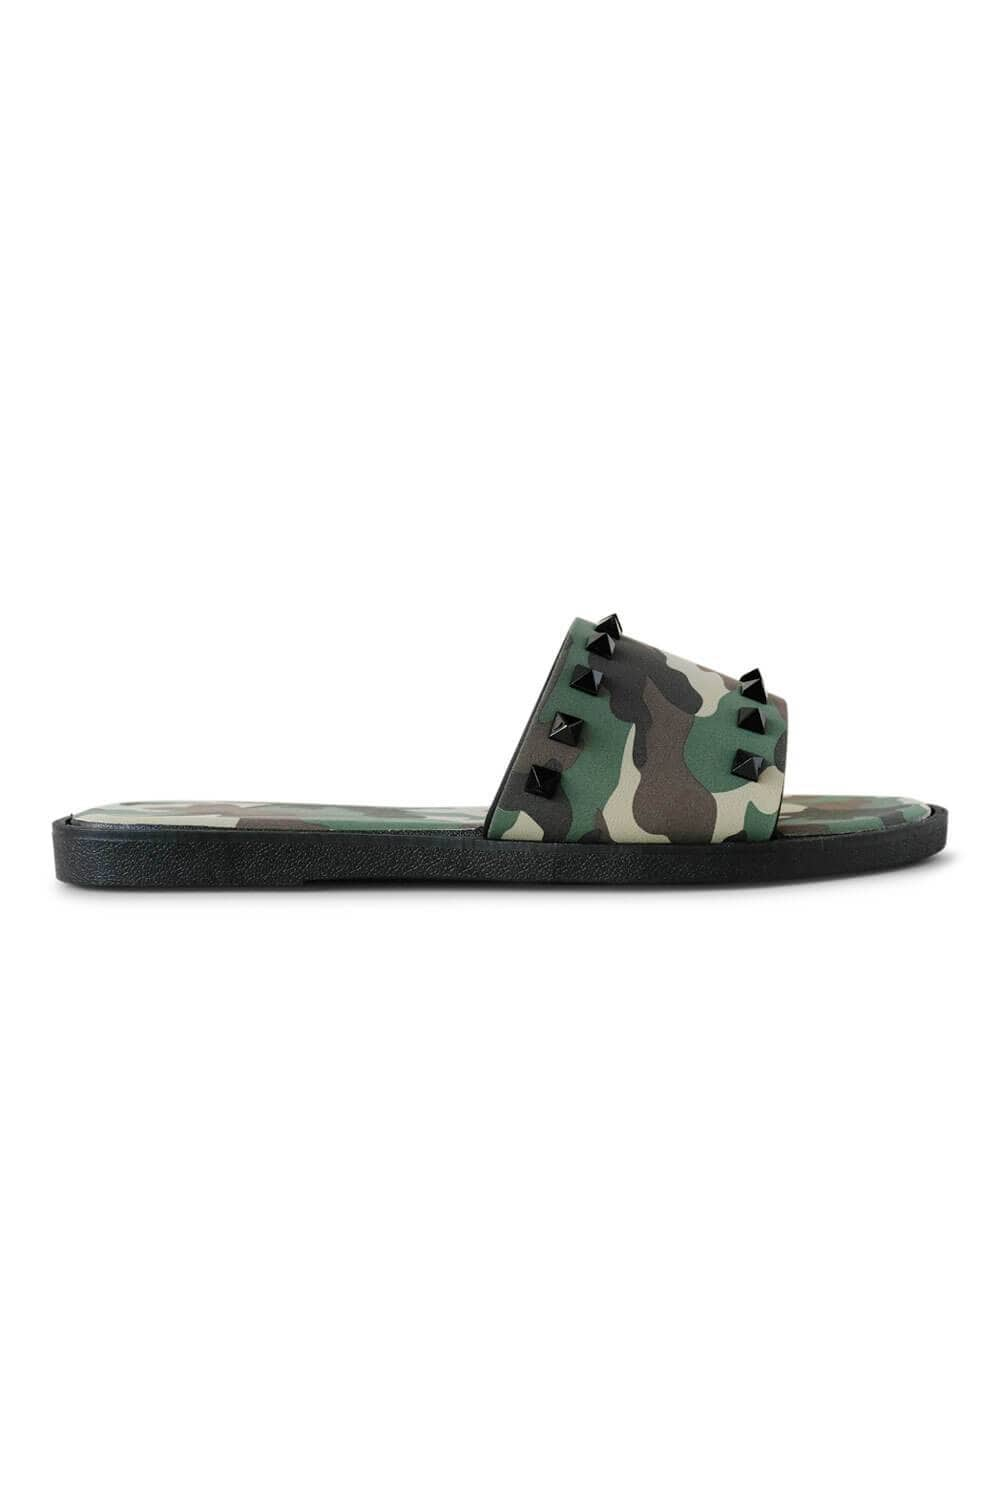 Camo Spiked Studded Slides Green side MILK MONEY